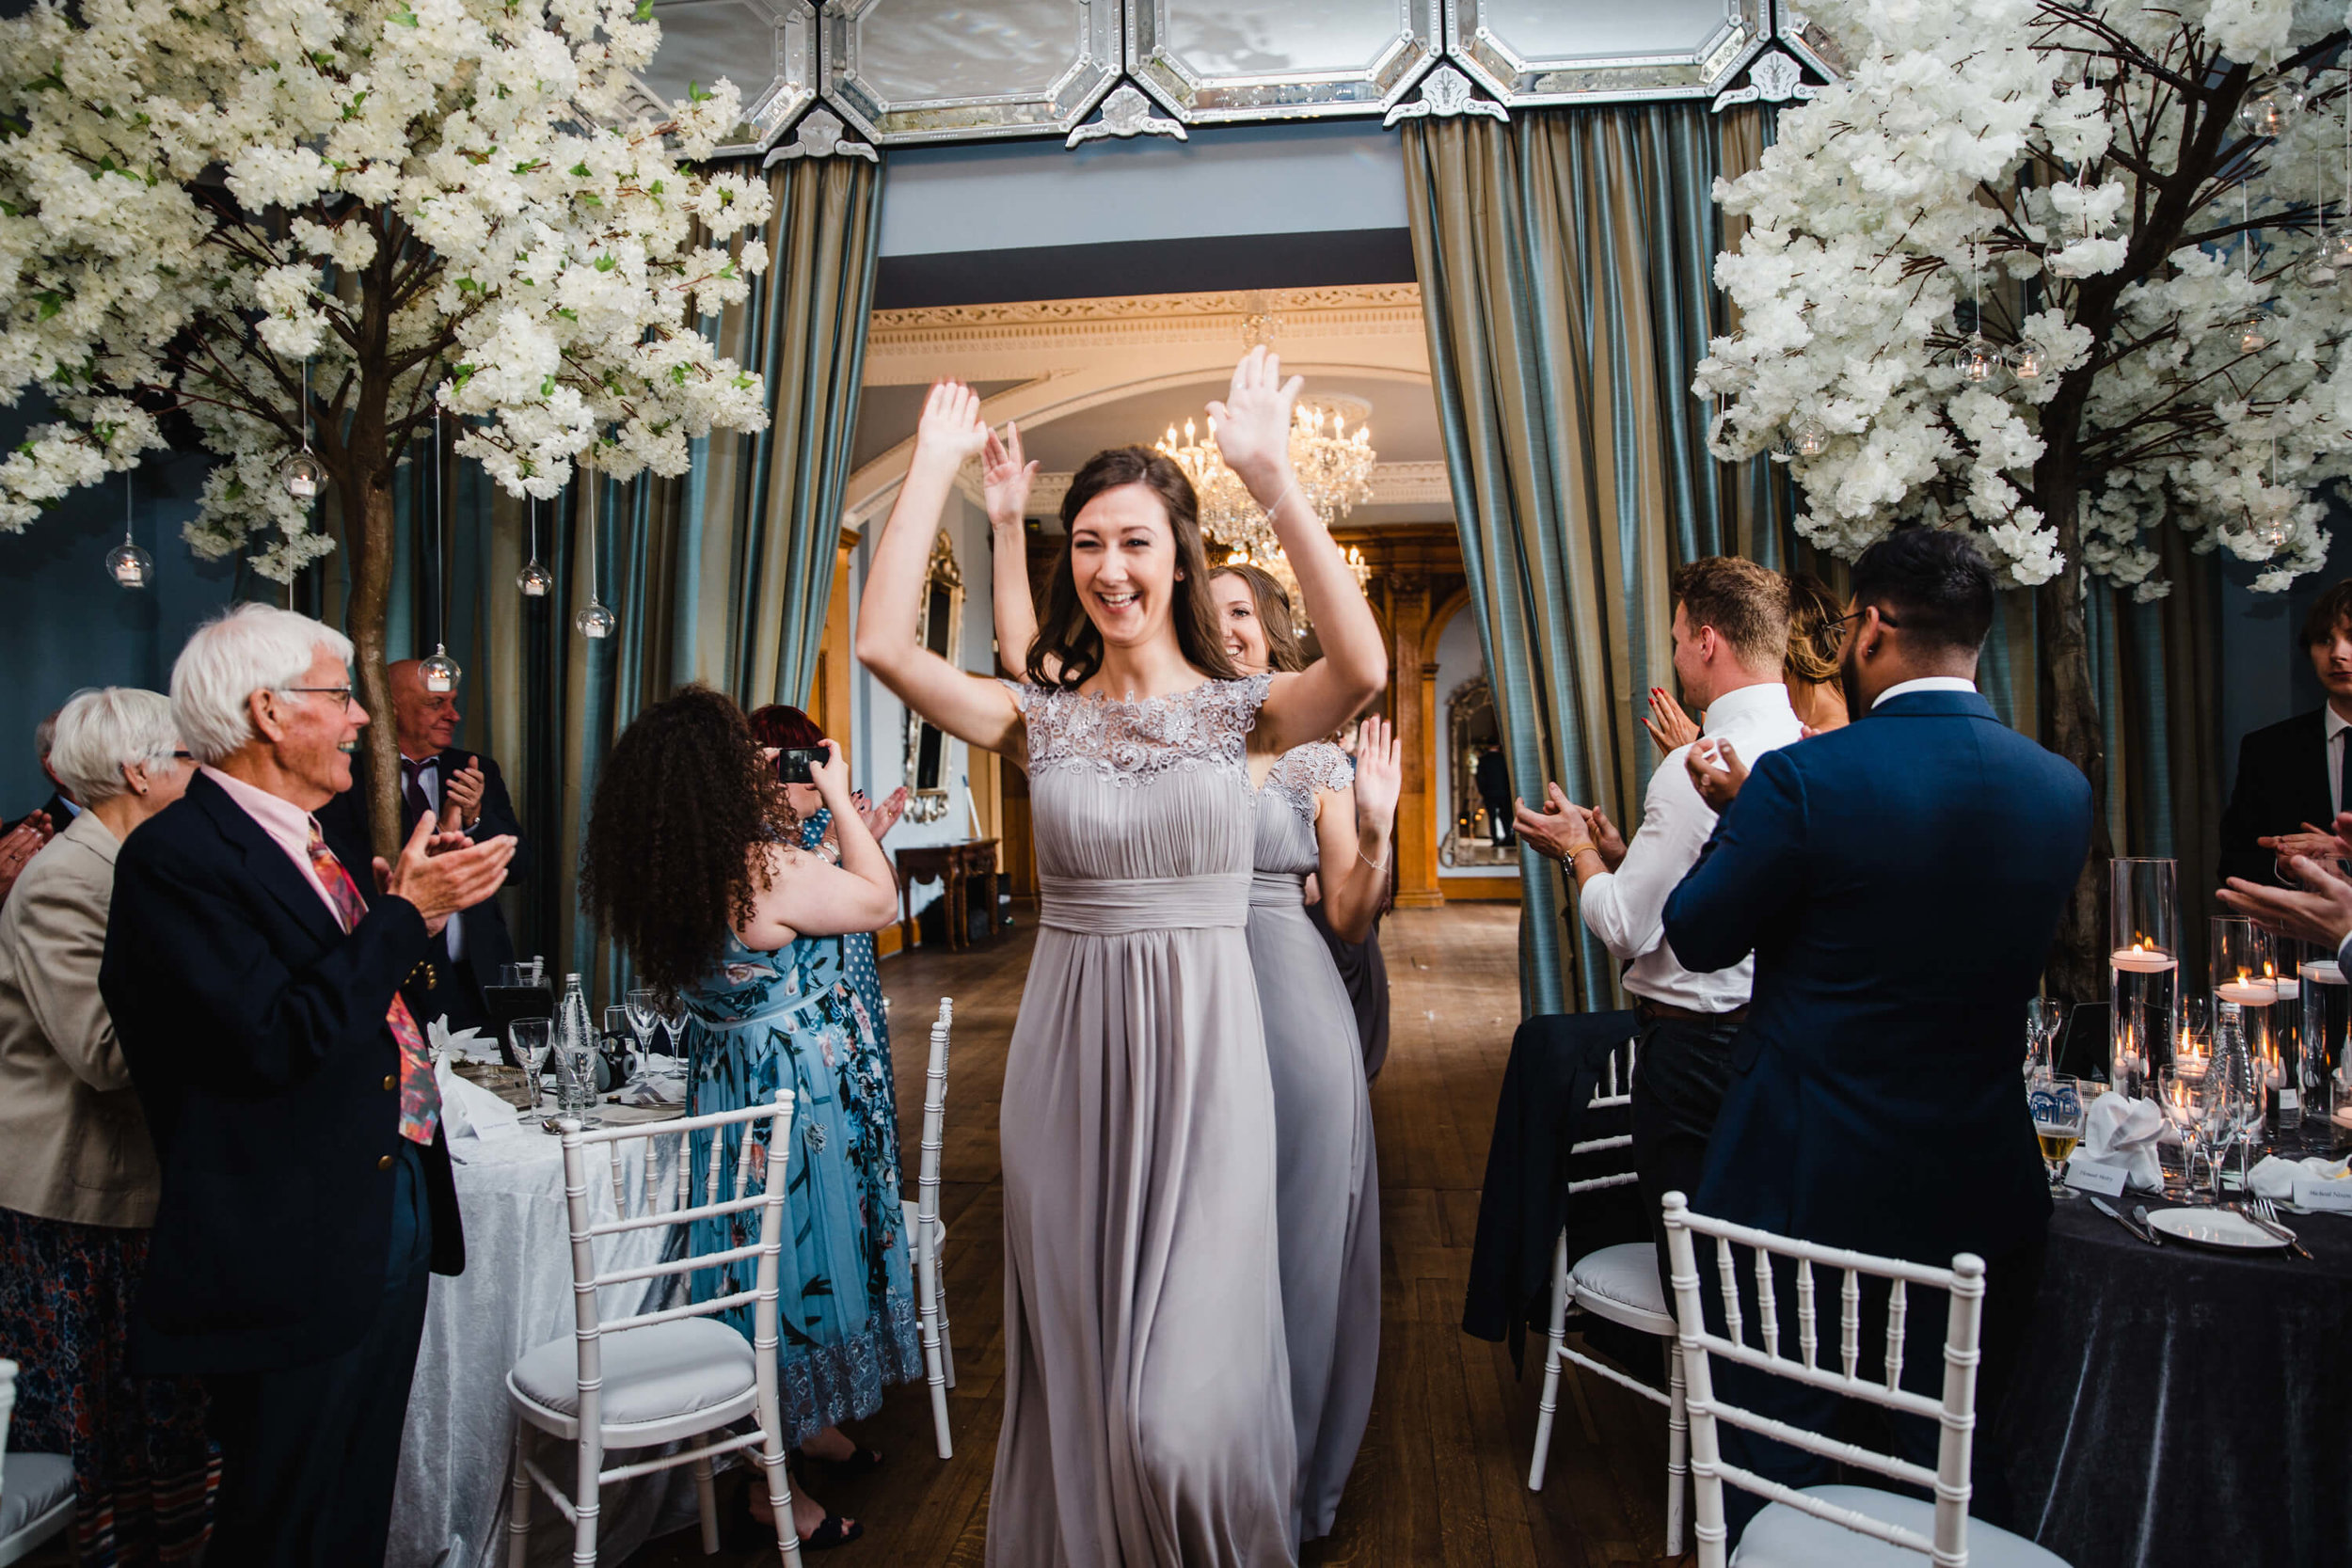 bridesmaids entering wedding breakfast room greeted by clapping wedding guests